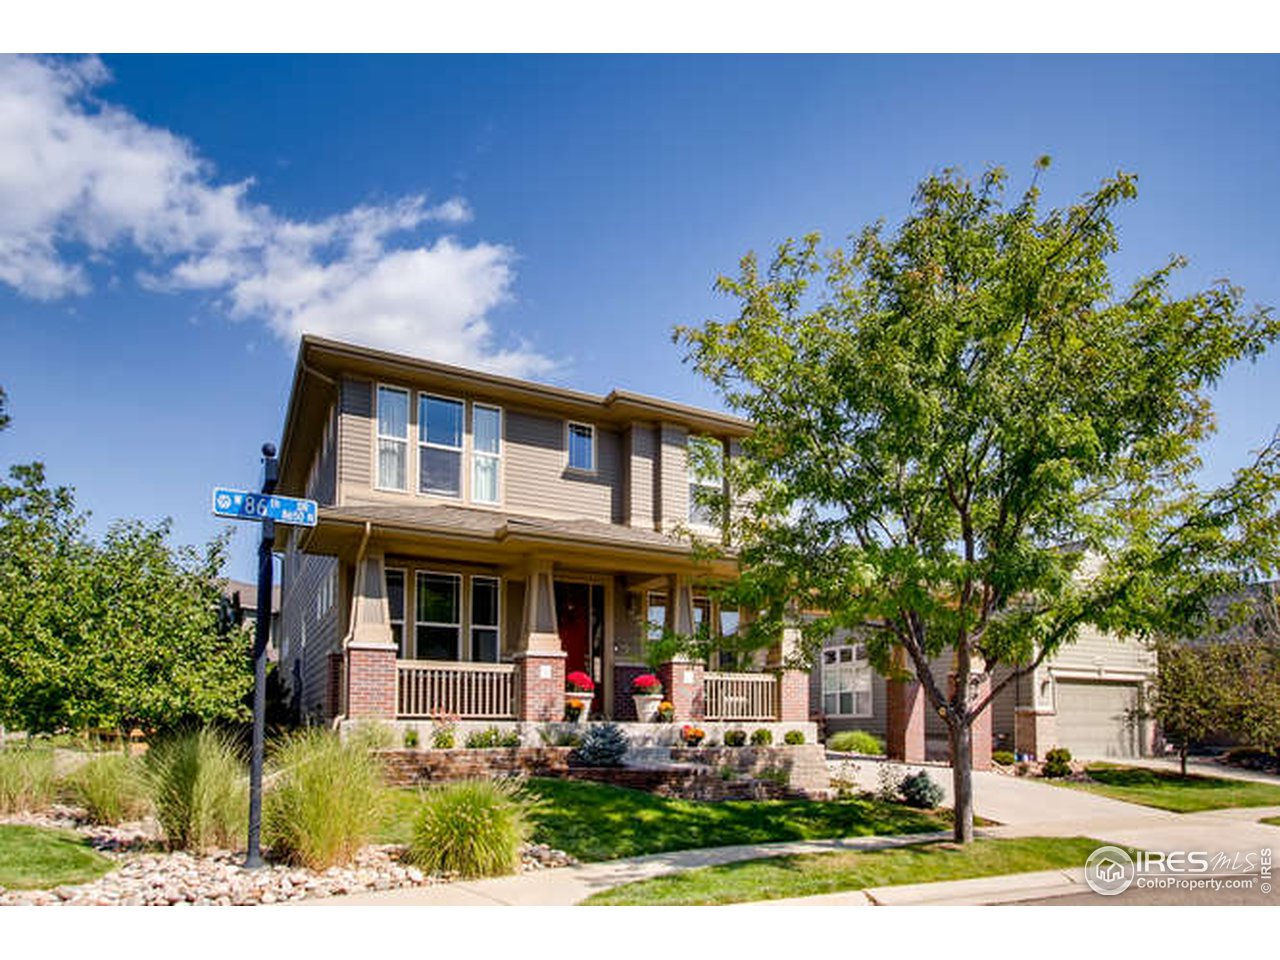 13625 W 86th Dr Arvada Co 80005 Neat Homes